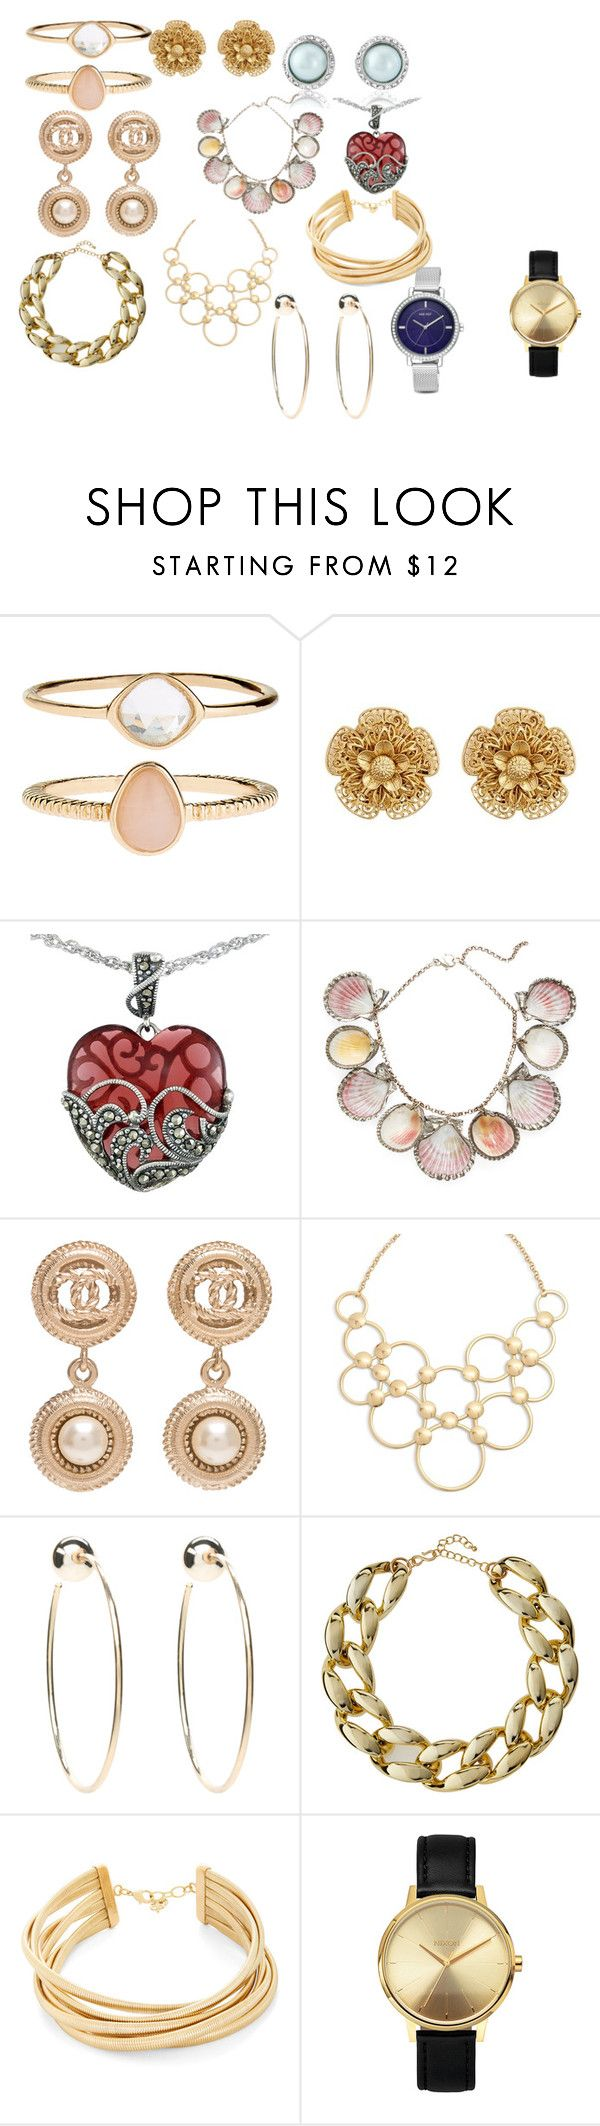 """Украшения для мягких черт лица."" by olivia80-1 on Polyvore featuring Accessorize, Miriam Haskell, Lord & Taylor, Paolo Costagli, Chanel, Vera Bradley, Bebe, Kenneth Jay Lane, BCBGMAXAZRIA and Nixon"